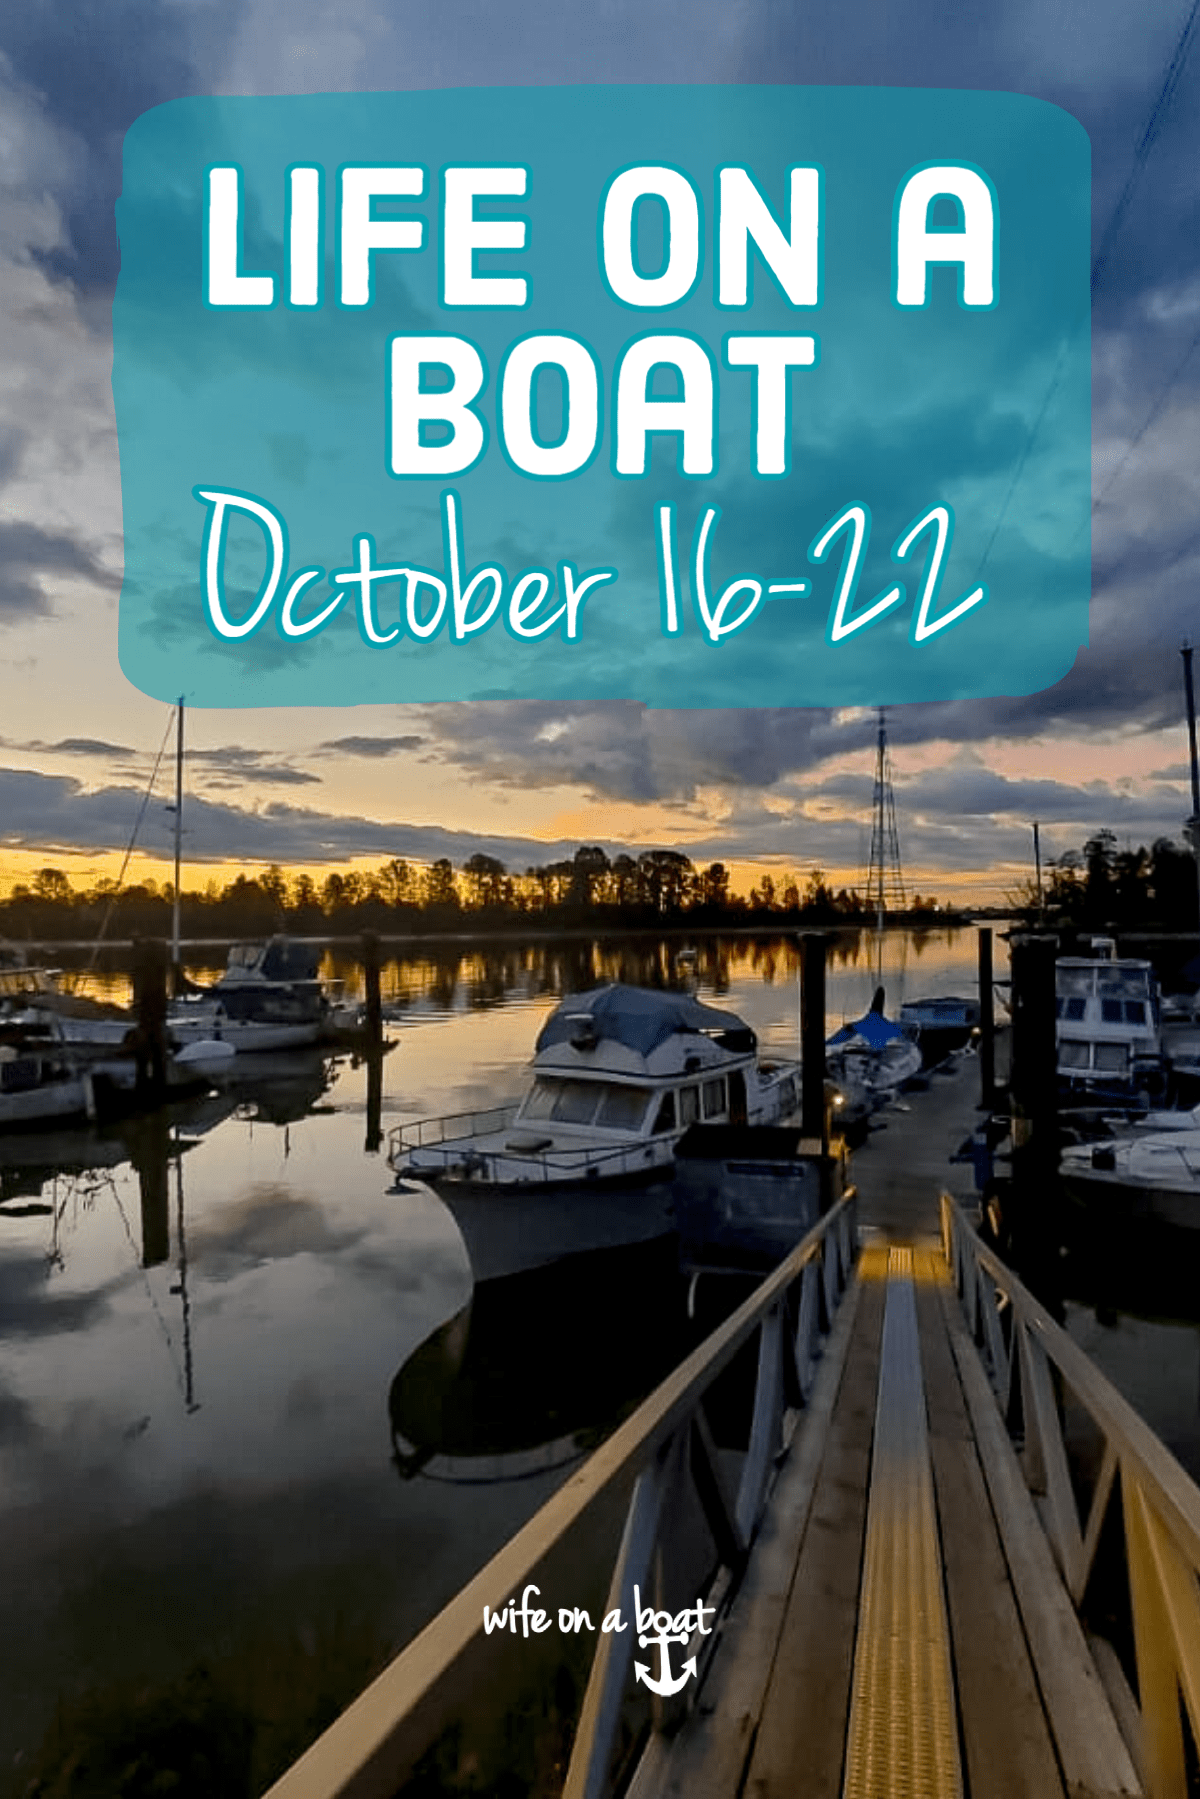 Life on a boat October 16-22